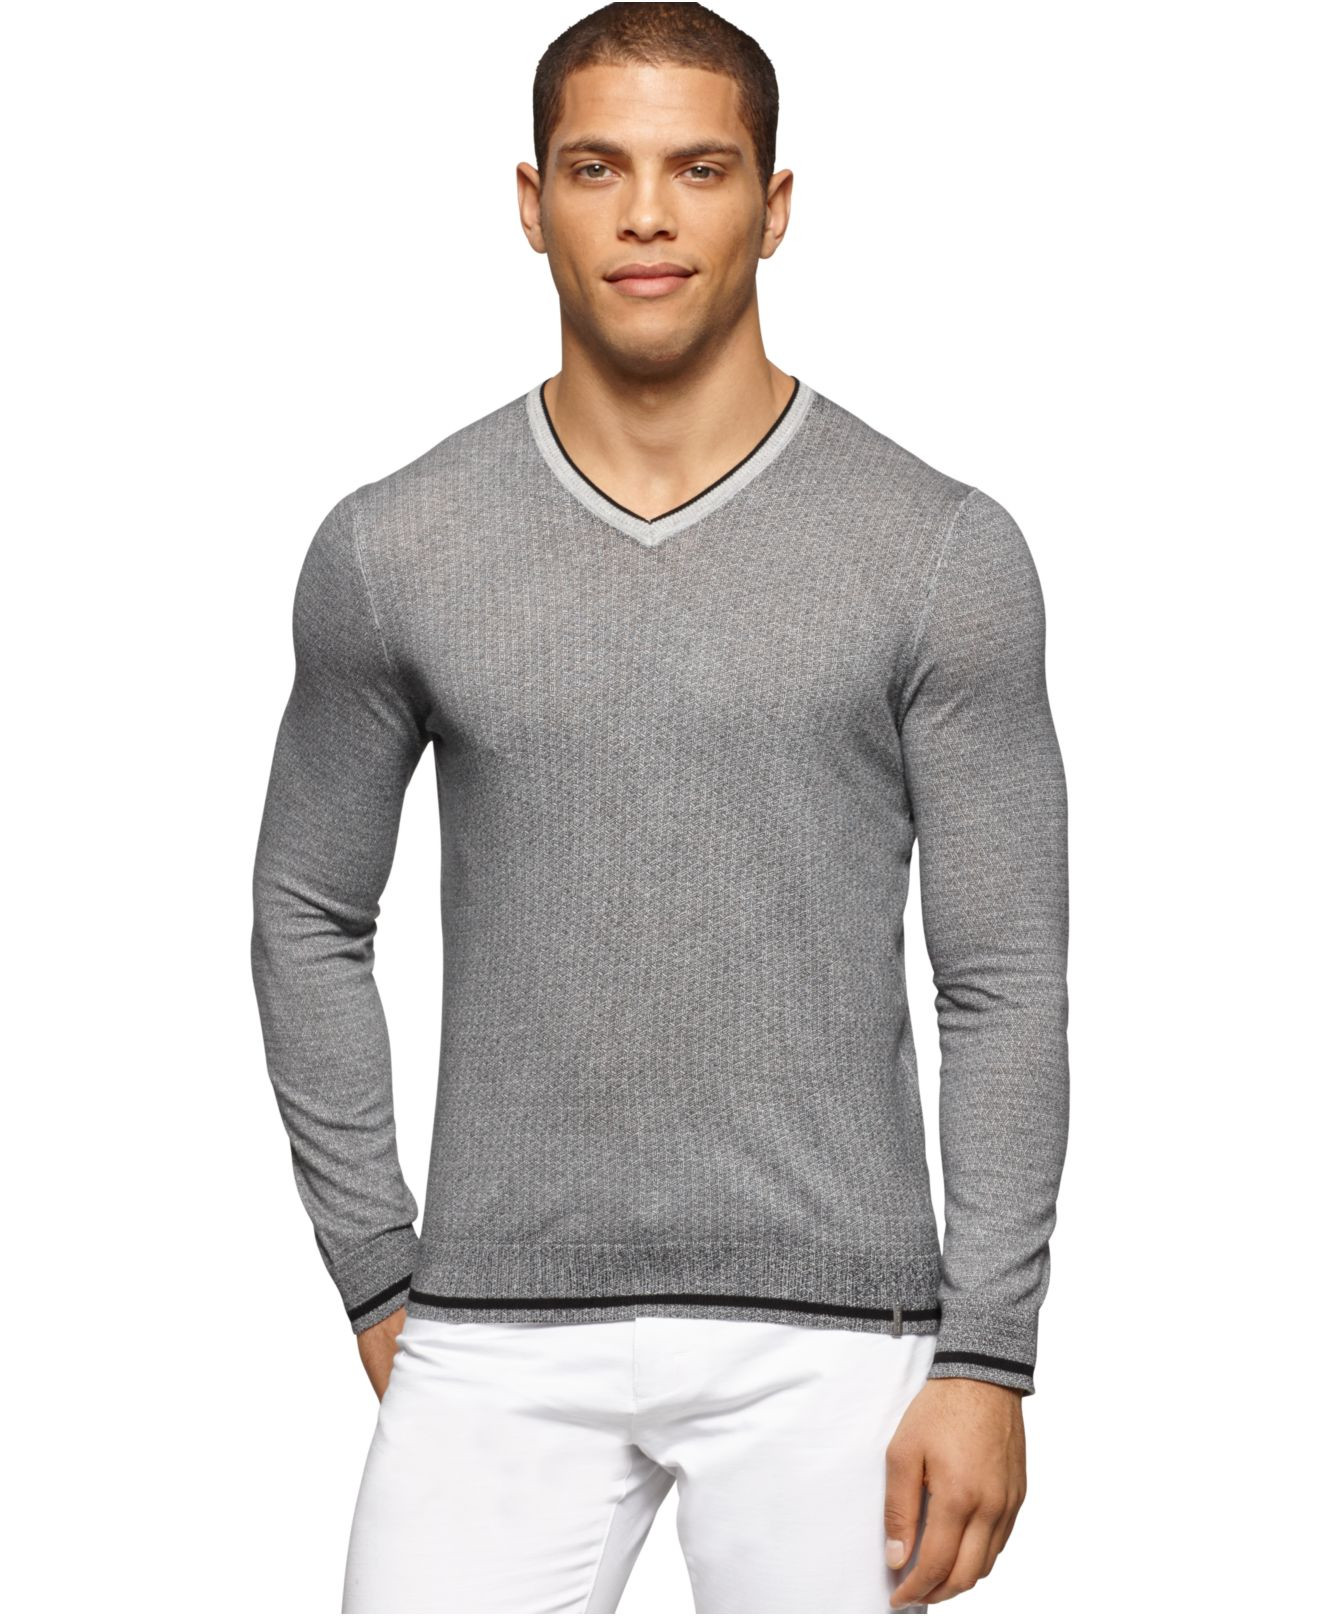 Luxury Calvin Klein V Neck Micro Cable Knit Sweater In Gray for V Neck Cable Knit Sweater Of Great 44 Pictures V Neck Cable Knit Sweater